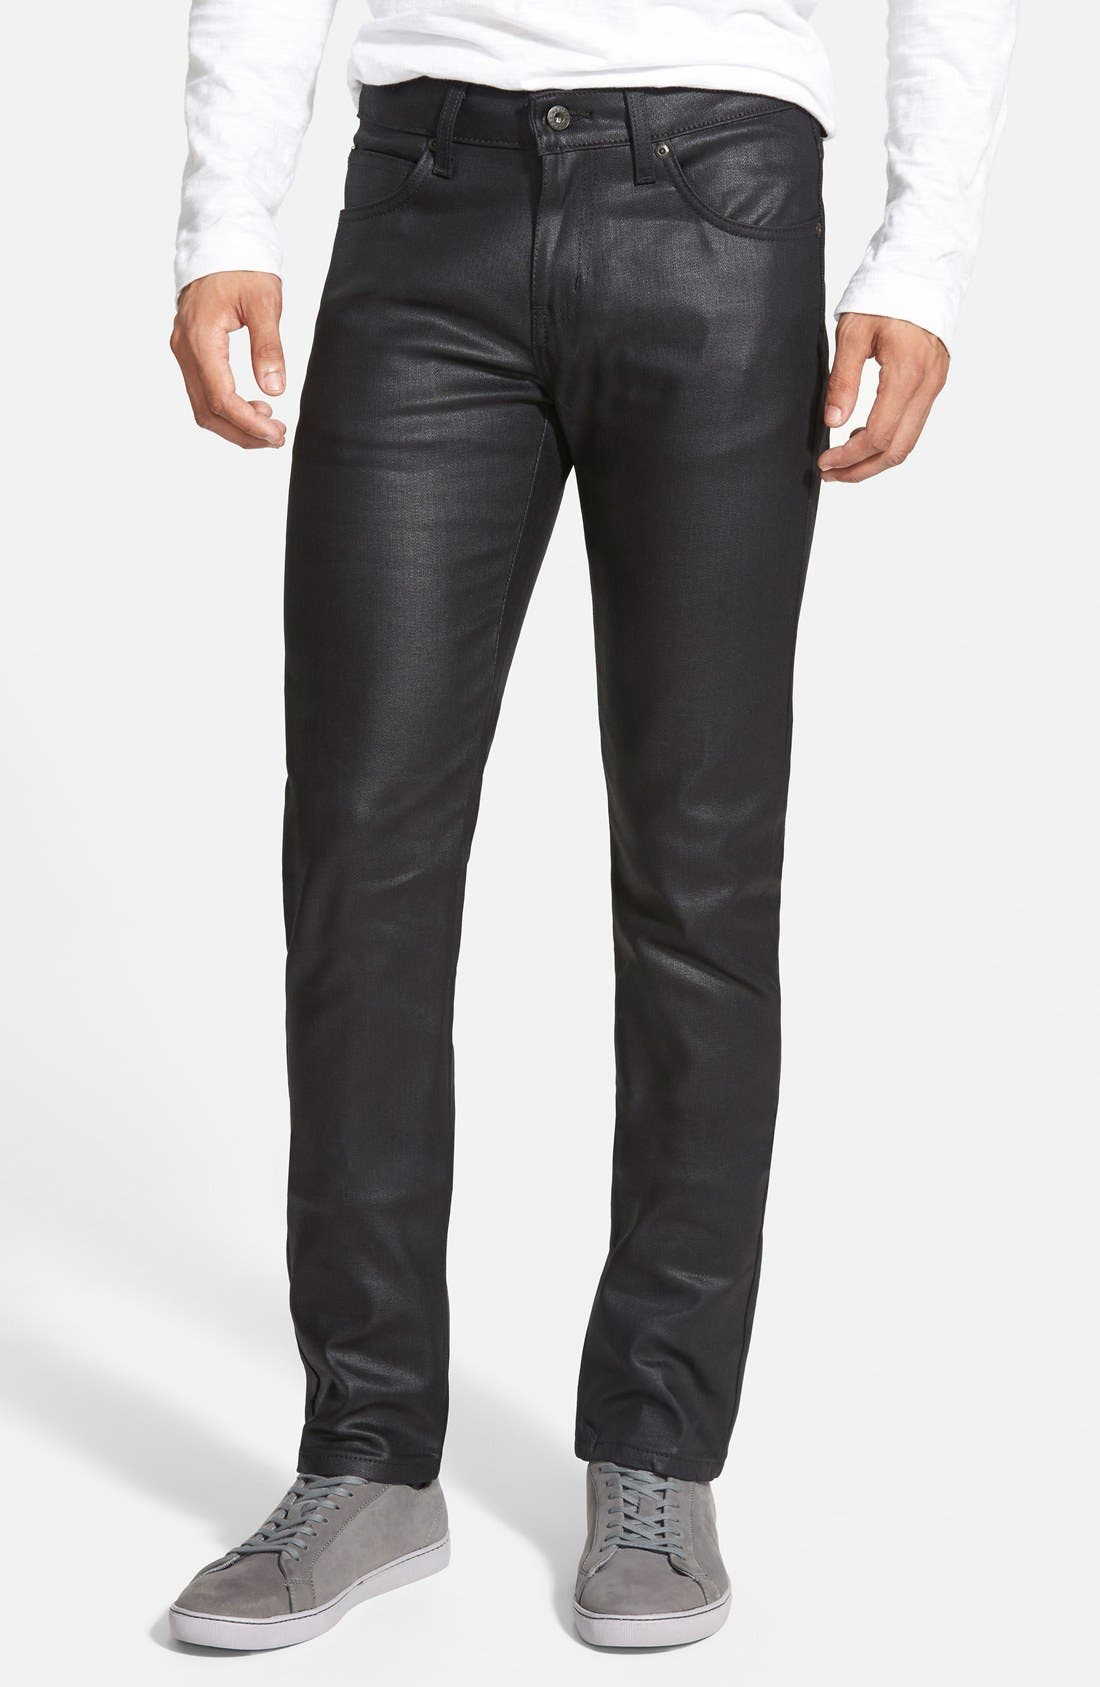 Super Skinny Guy Skinny Stretch Jeans,                             Main thumbnail 1, color,                             001